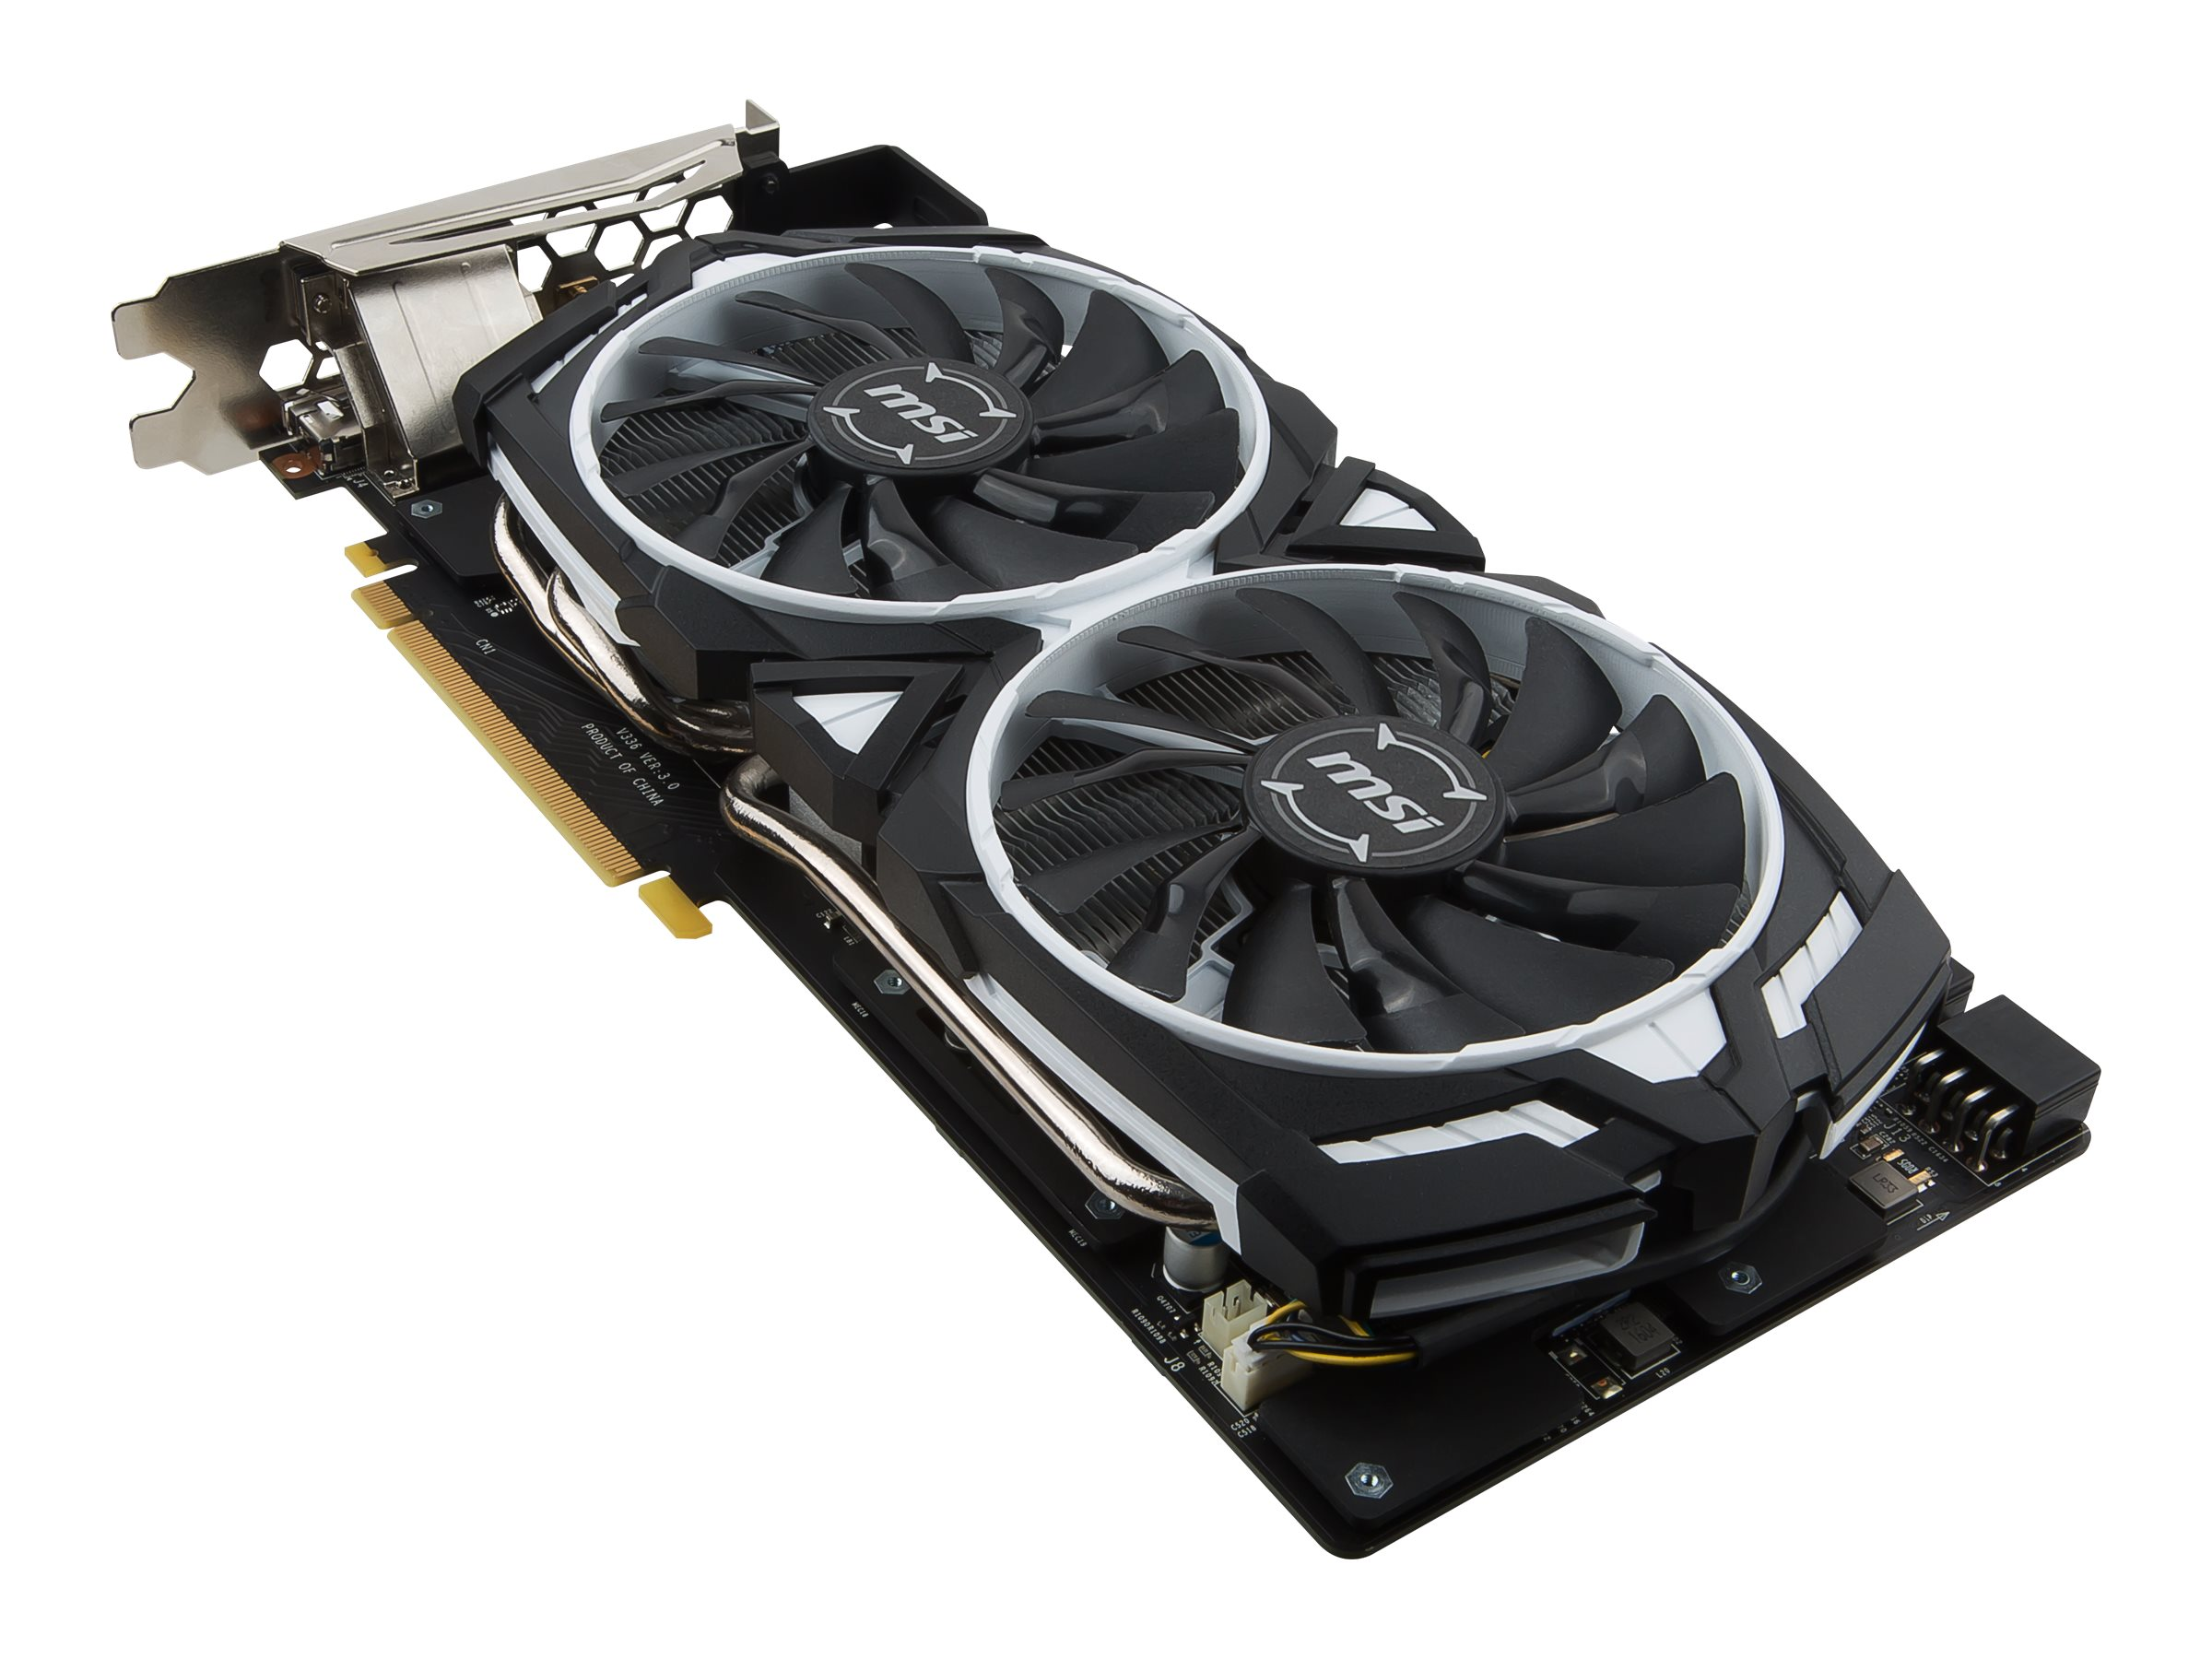 Microstar GeForce GTX1080 Armor Overclocked Graphics Card, 8GB GDDR5X